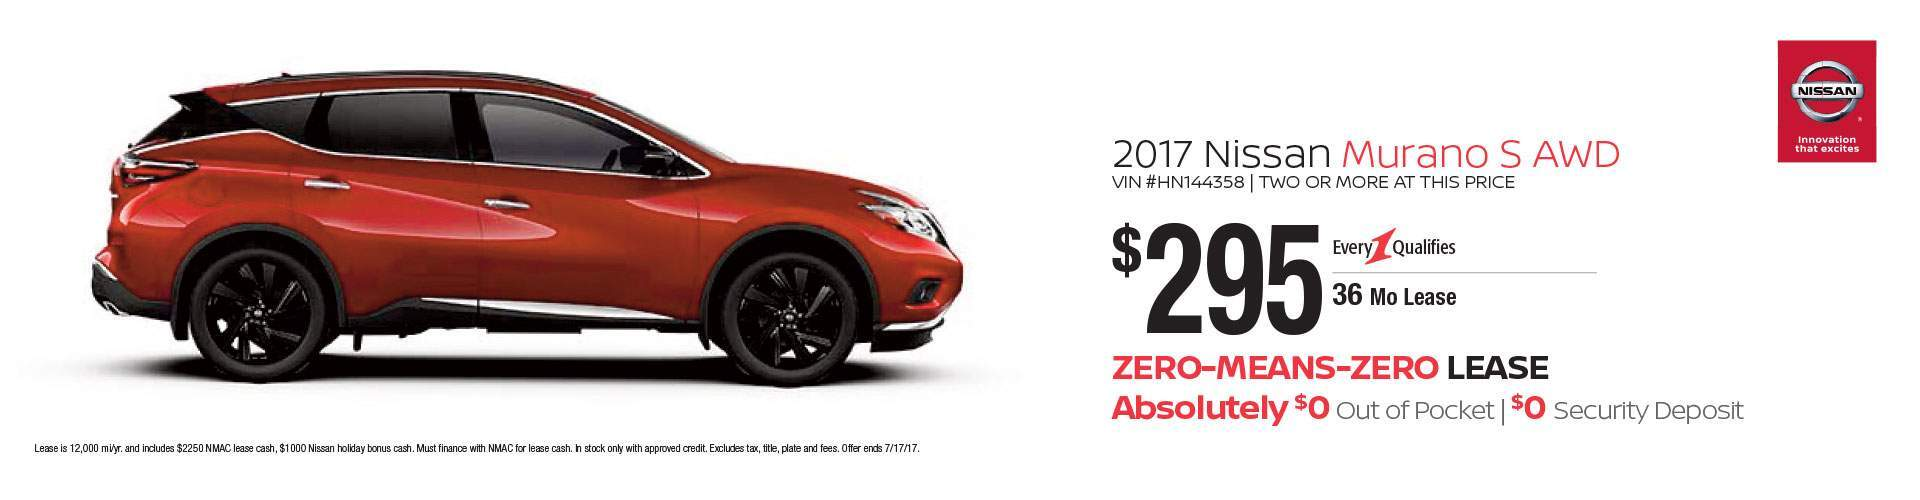 Nissan Dealership Pittsburgh PA | Used Cars Nissan South Hills